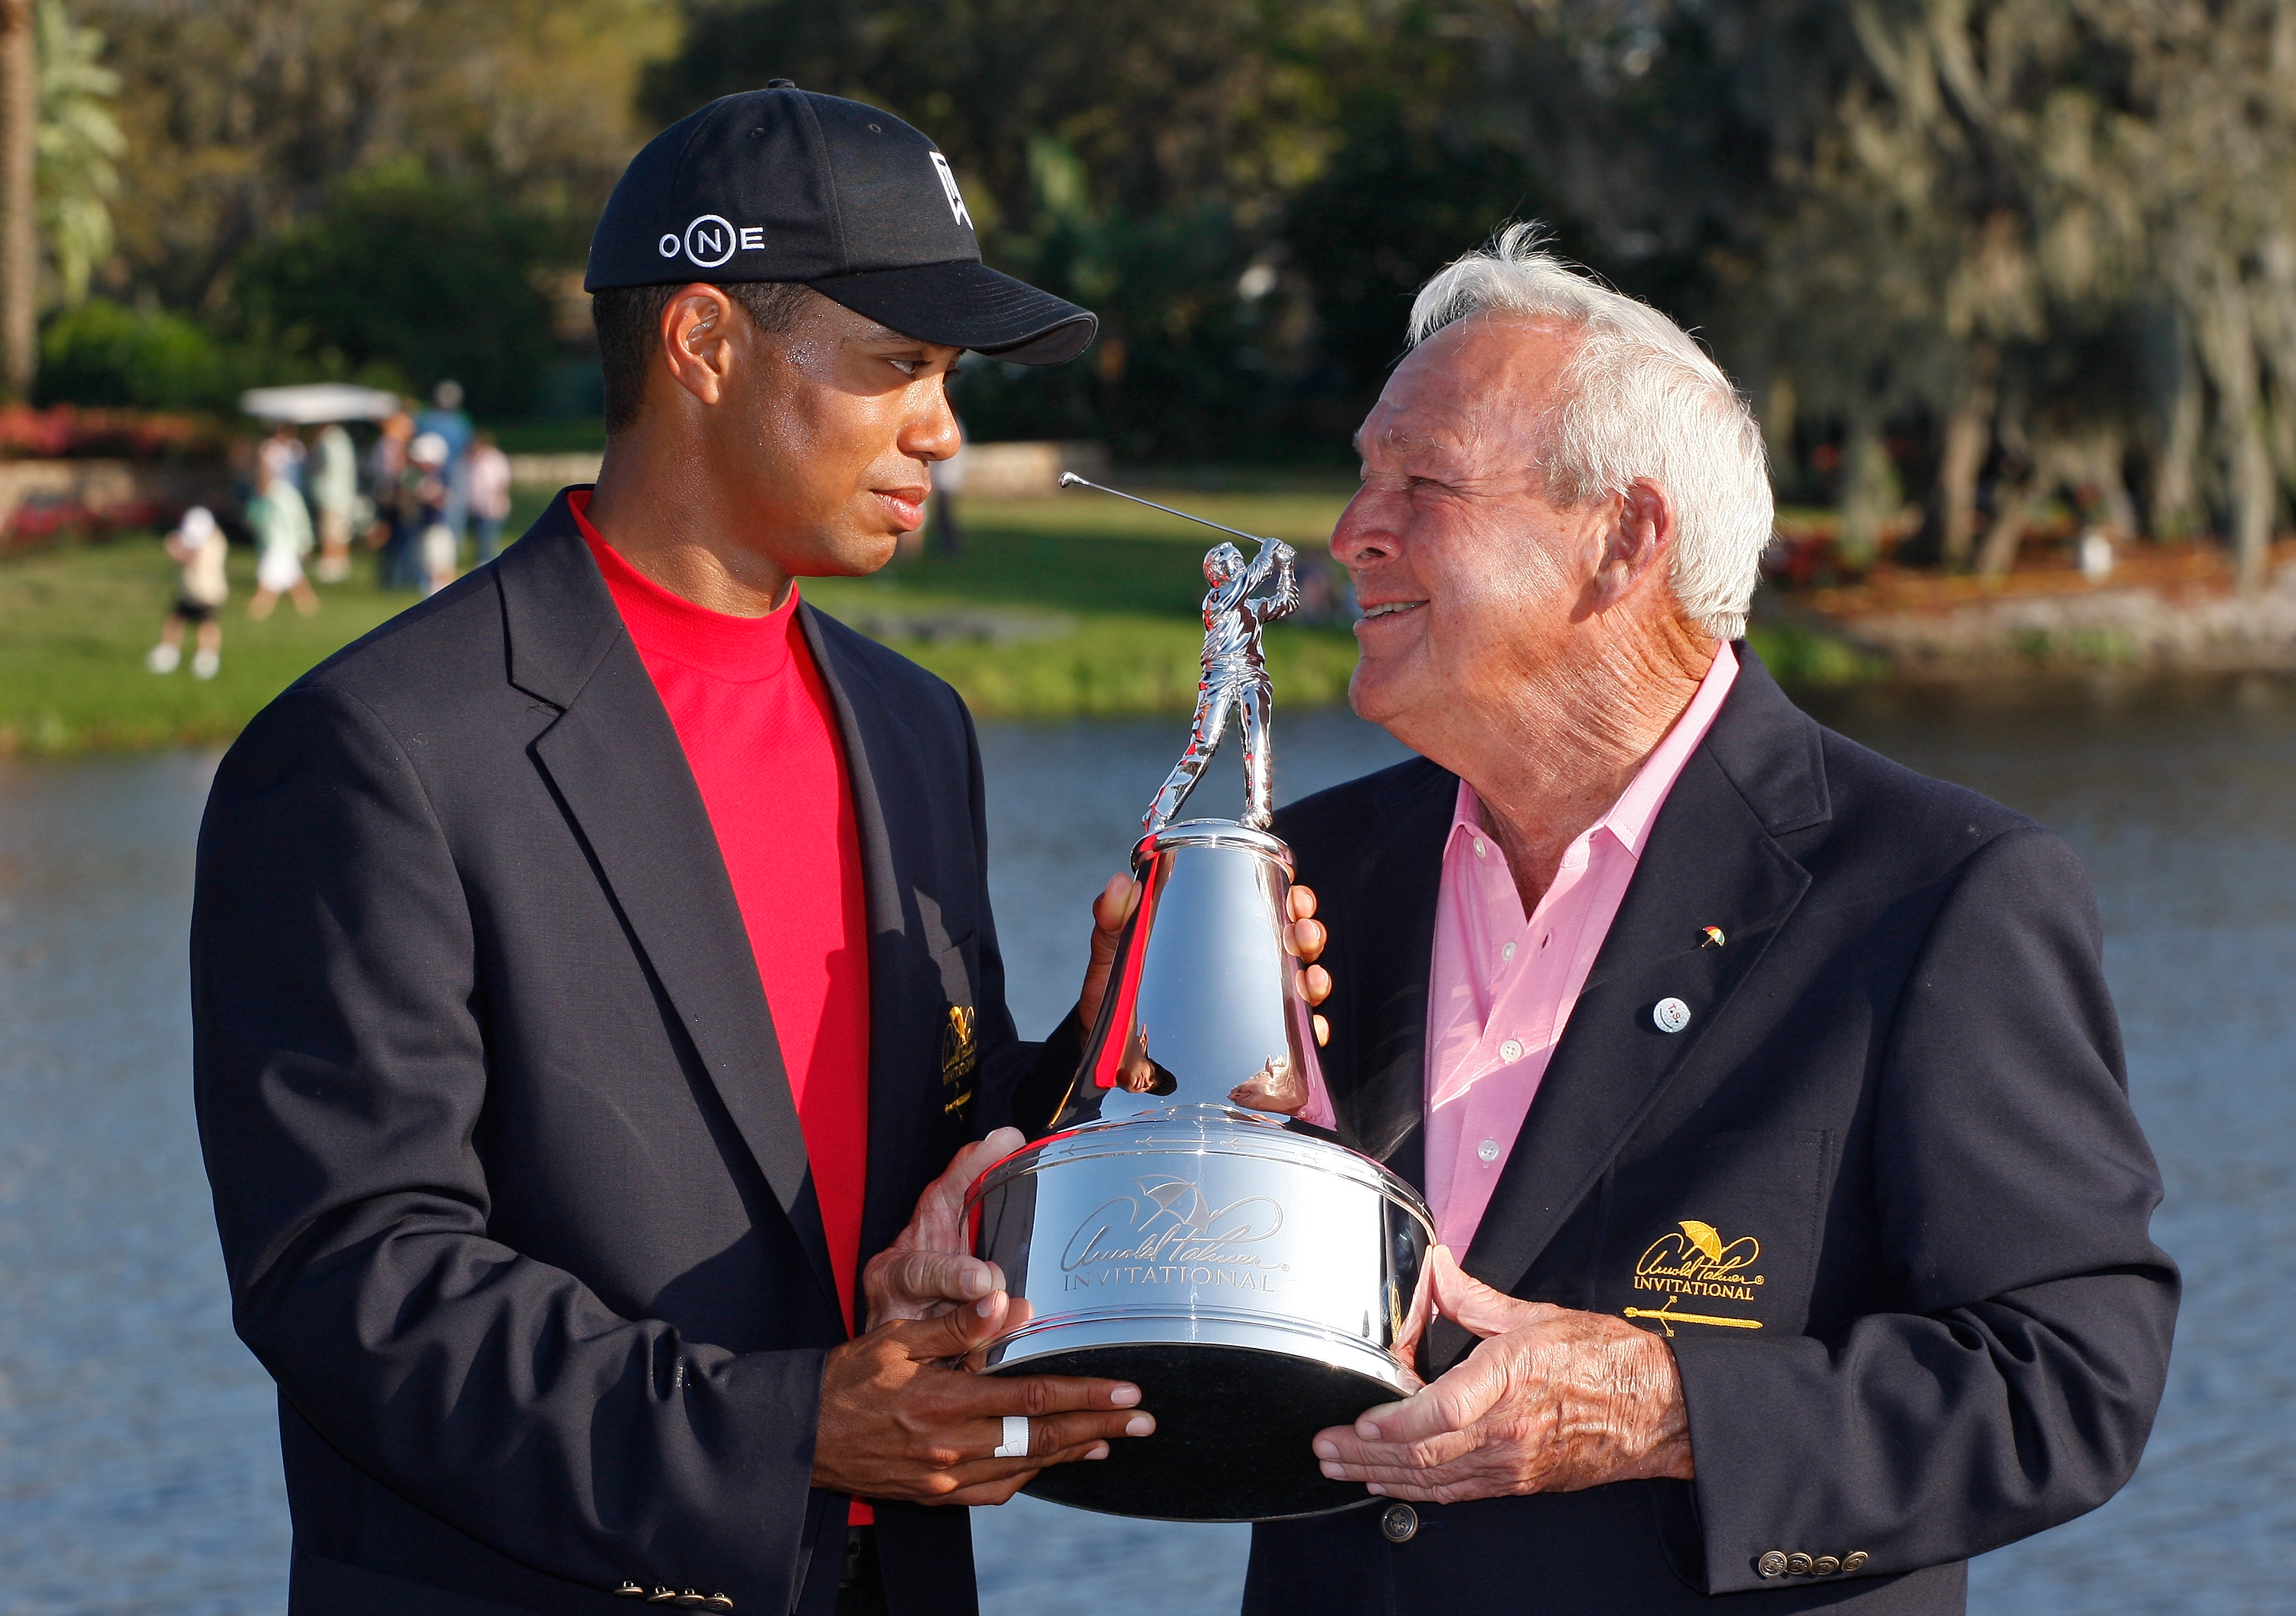 Tiger Woods poses with the winners trophy and Arnold Palmer after his victory in the Arnold Palmer Invitational presented by MasterCard held on March 16, 2008 at Bay Hill Golf Club and Lodge in Orlando, Florida.